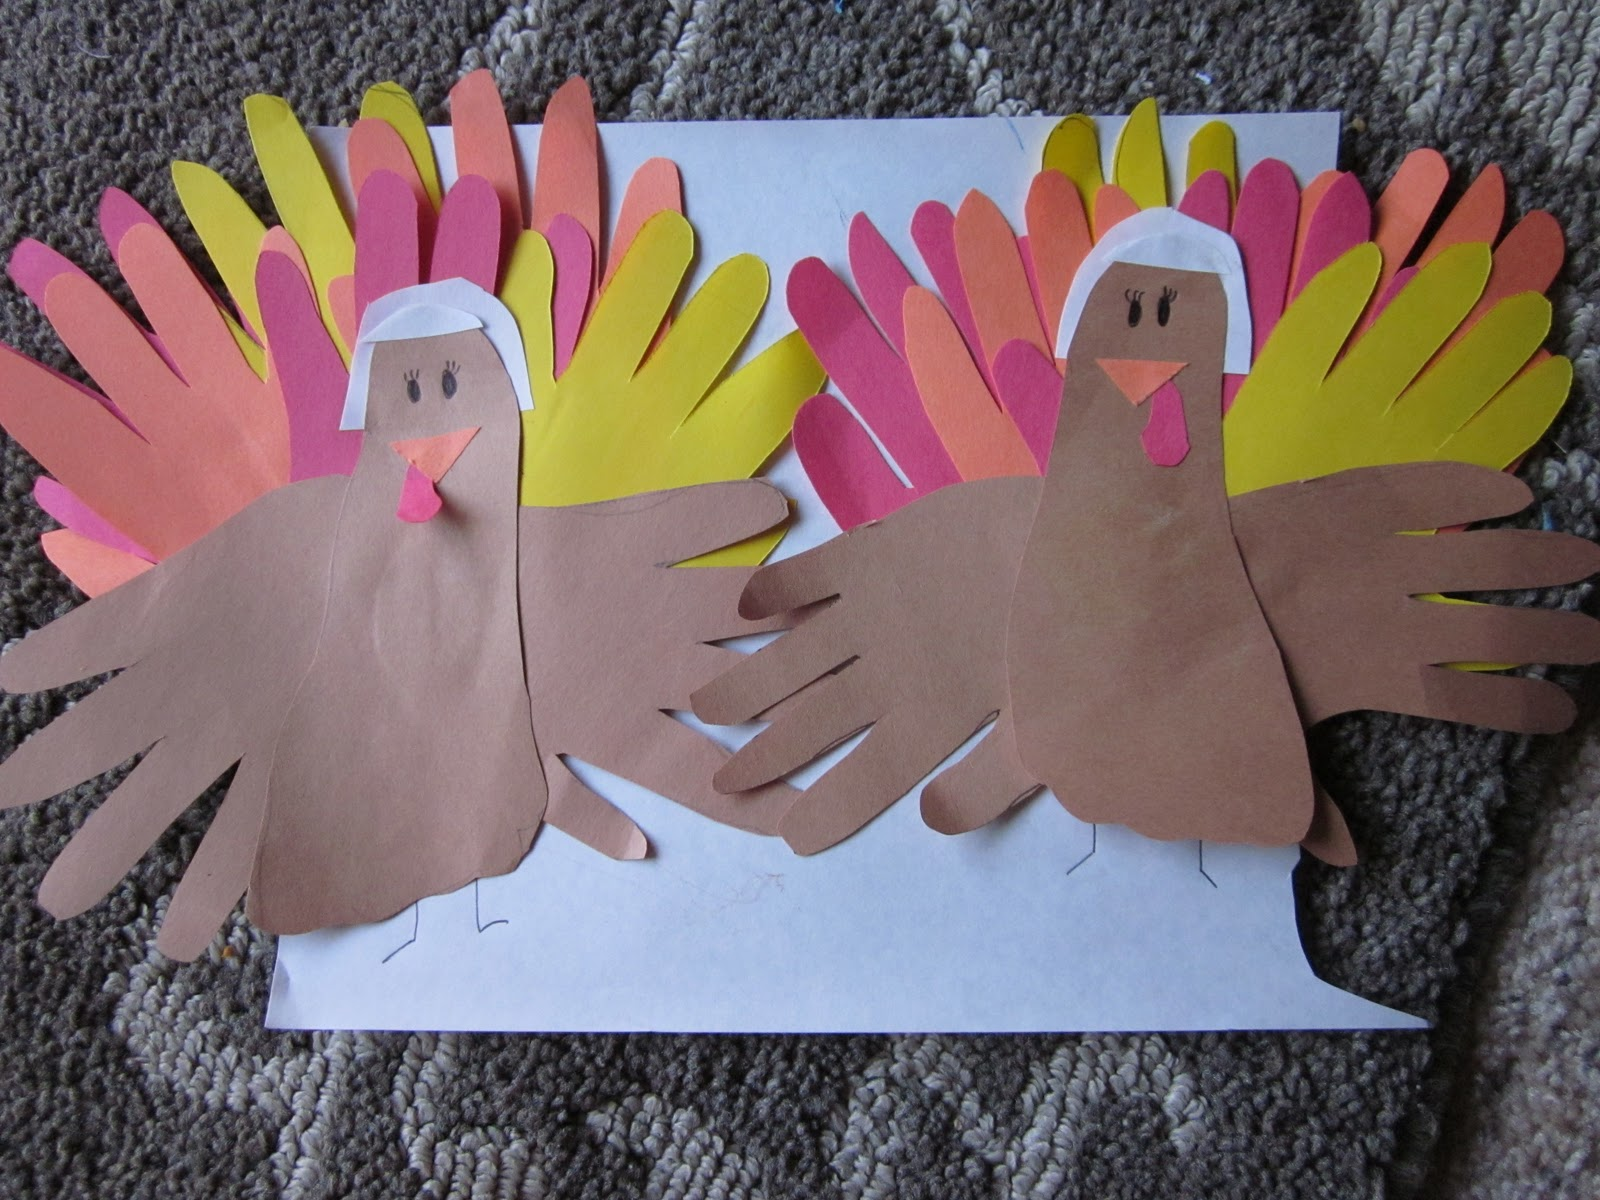 Sew crafty mommy: simple 5 10 minute thanksgiving crafts